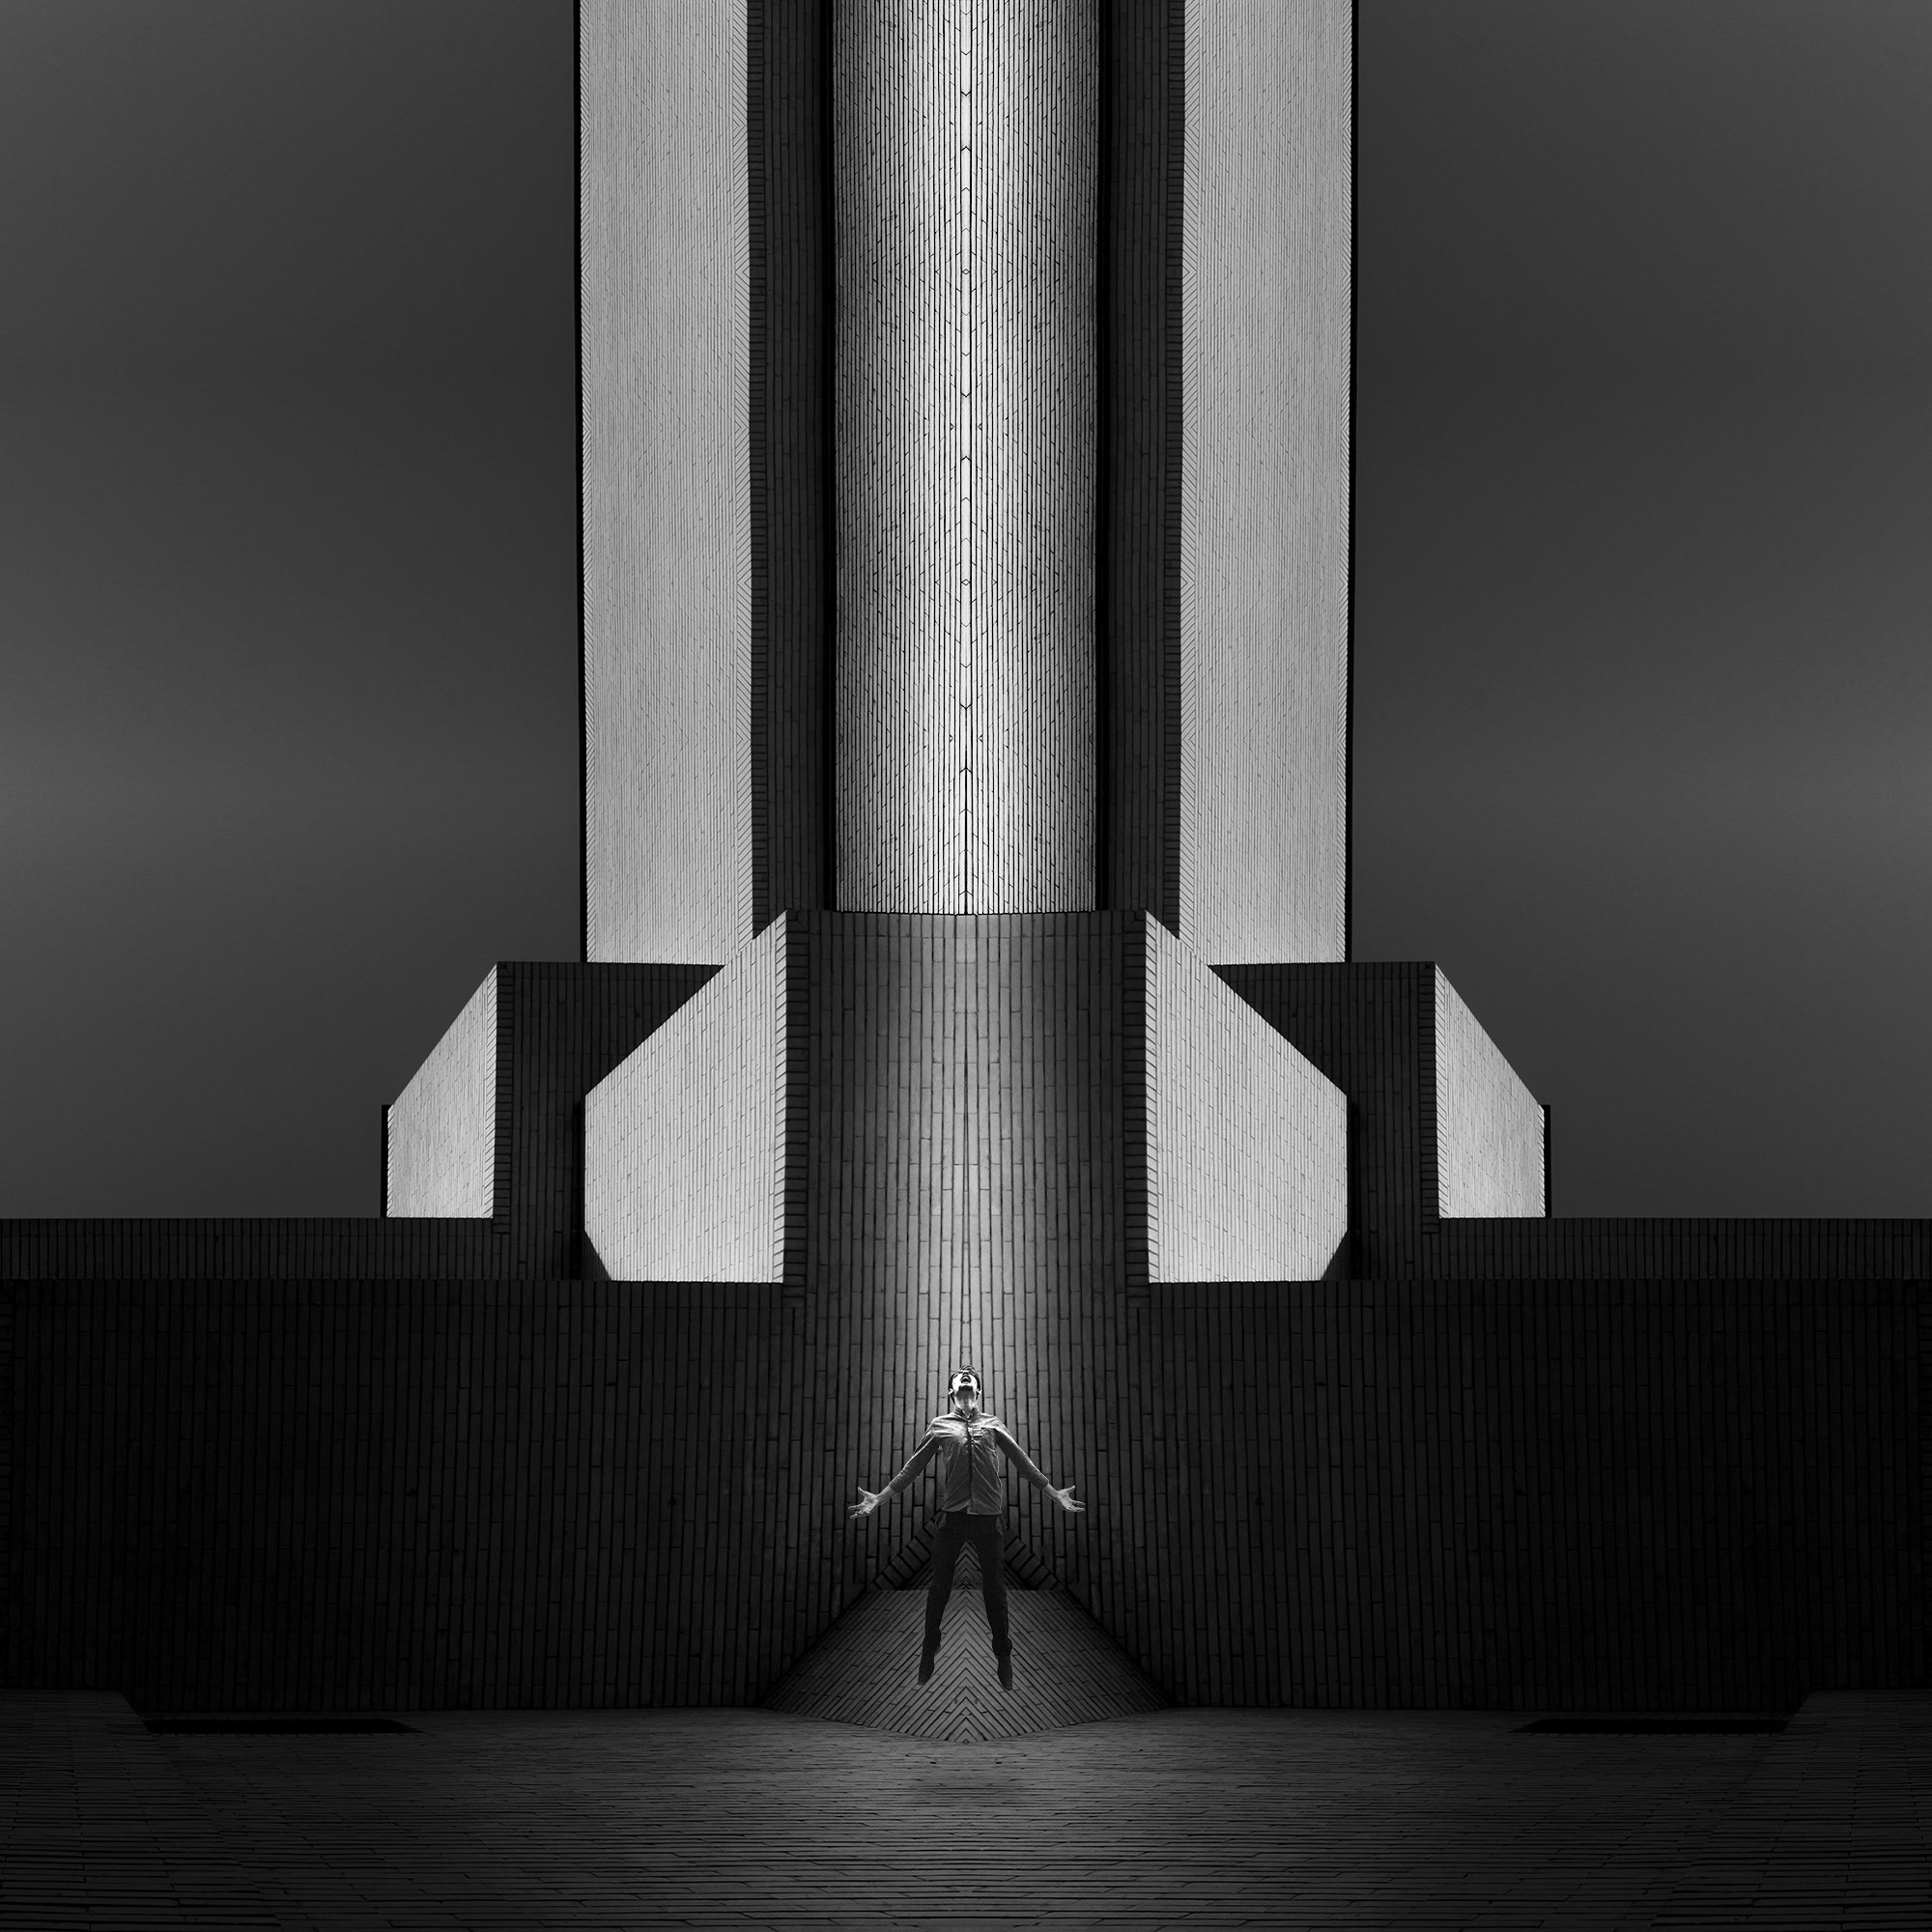 Milad_Safabakhsh_The spce in between By Milad safabakhsh (6).jpg